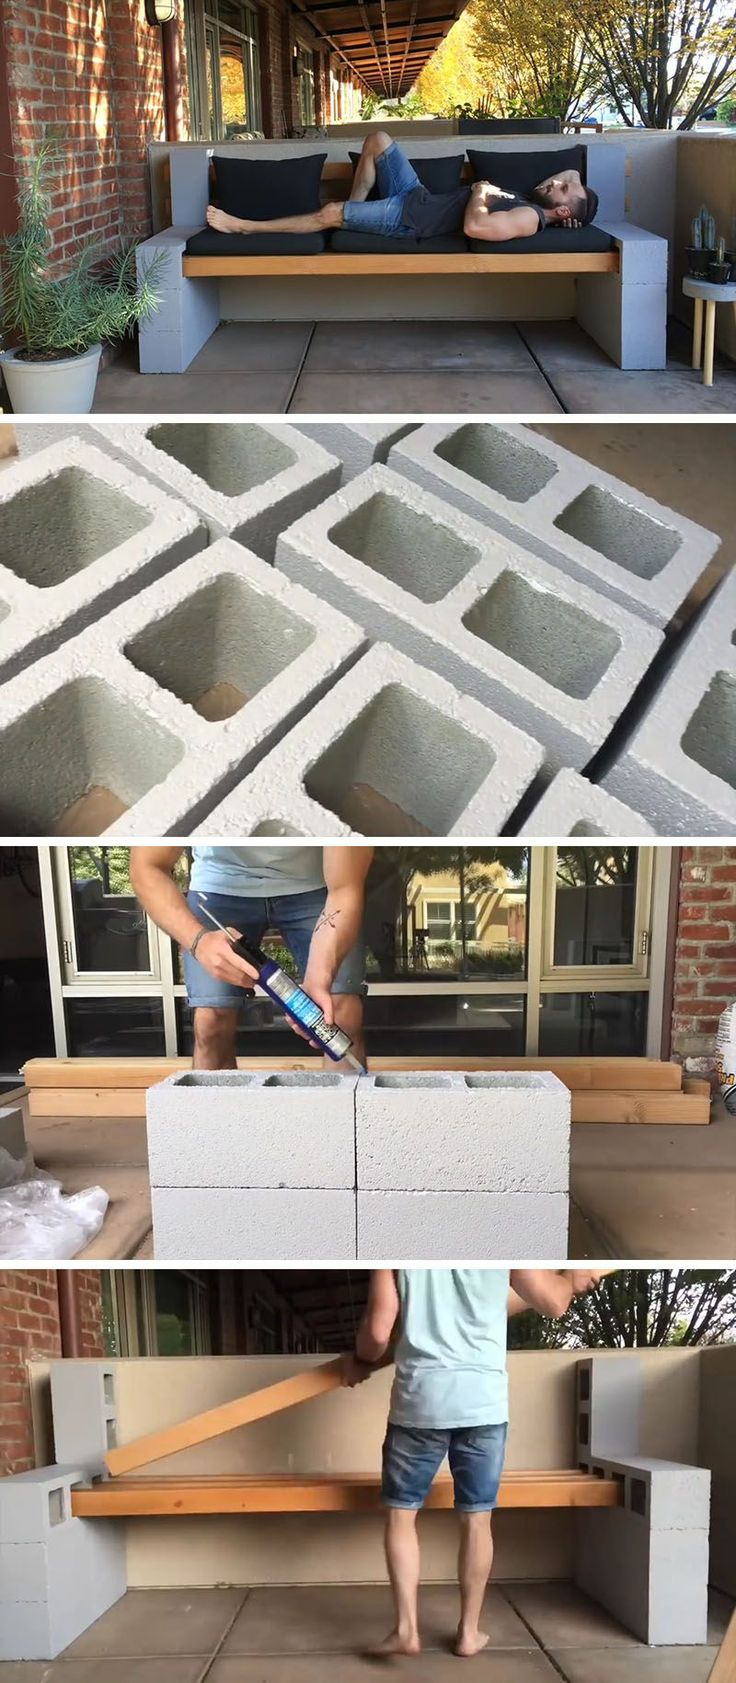 Design Cinder Block Table best 25 cinder block furniture ideas on pinterest make your own inexpensive outdoor with this diy concrete bench